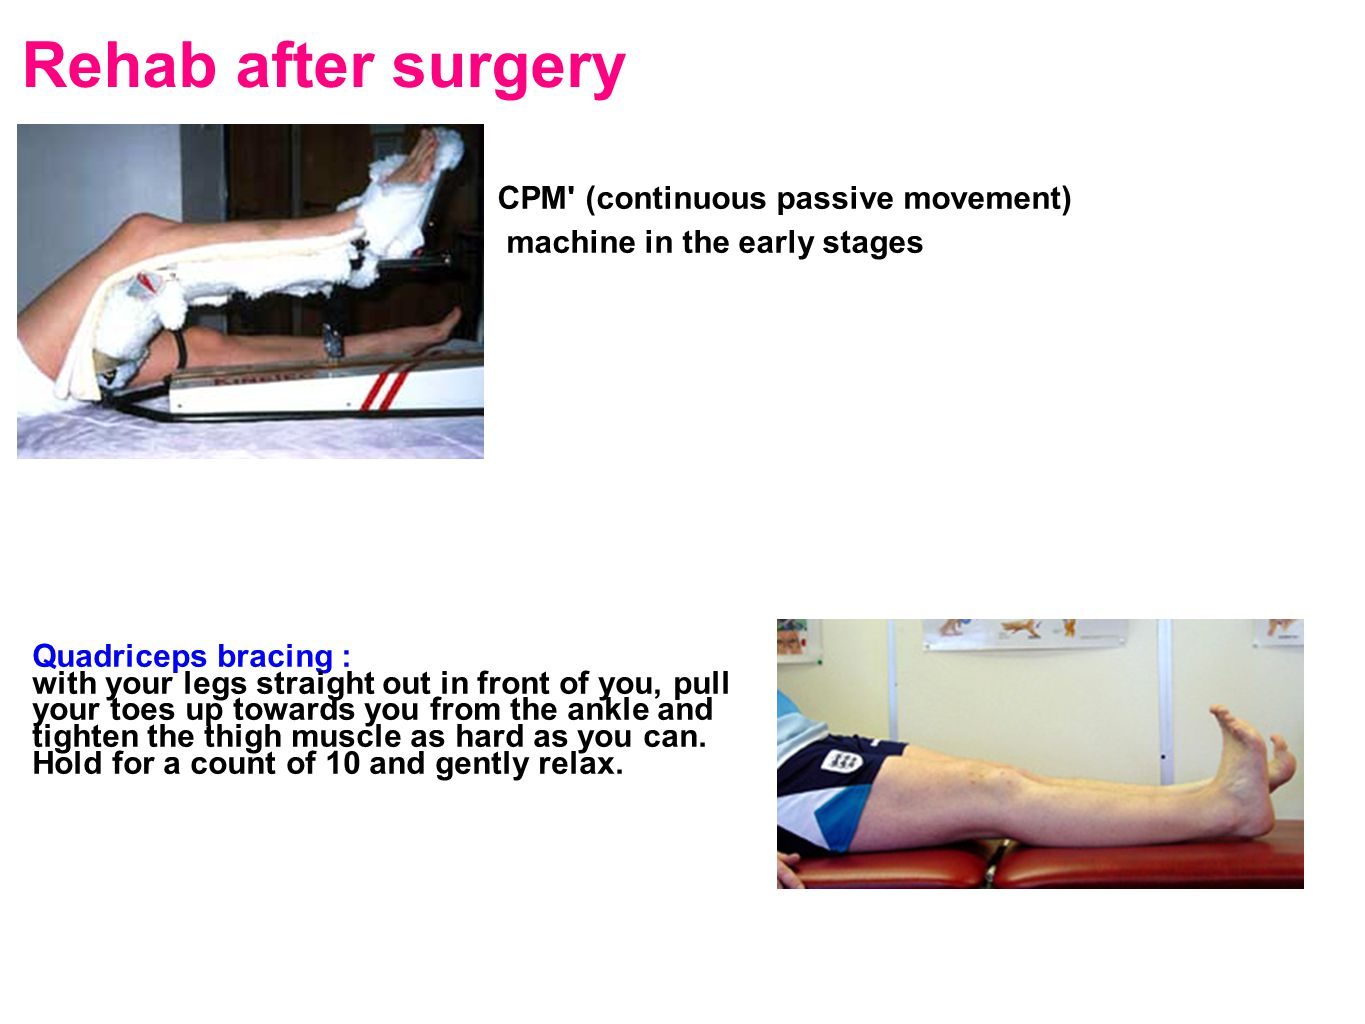 Rehab after surgery CPM (continuous passive movement)